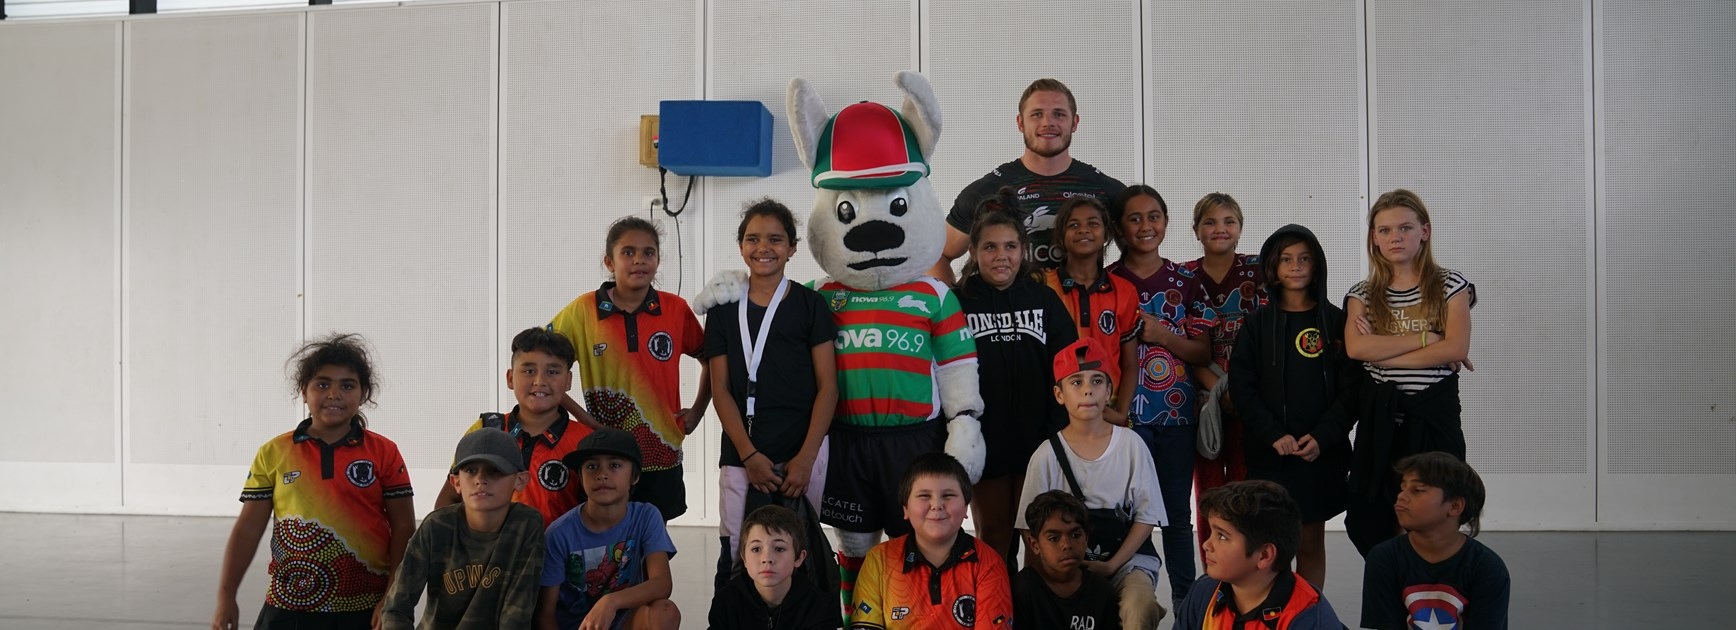 Year in Review: Souths Cares